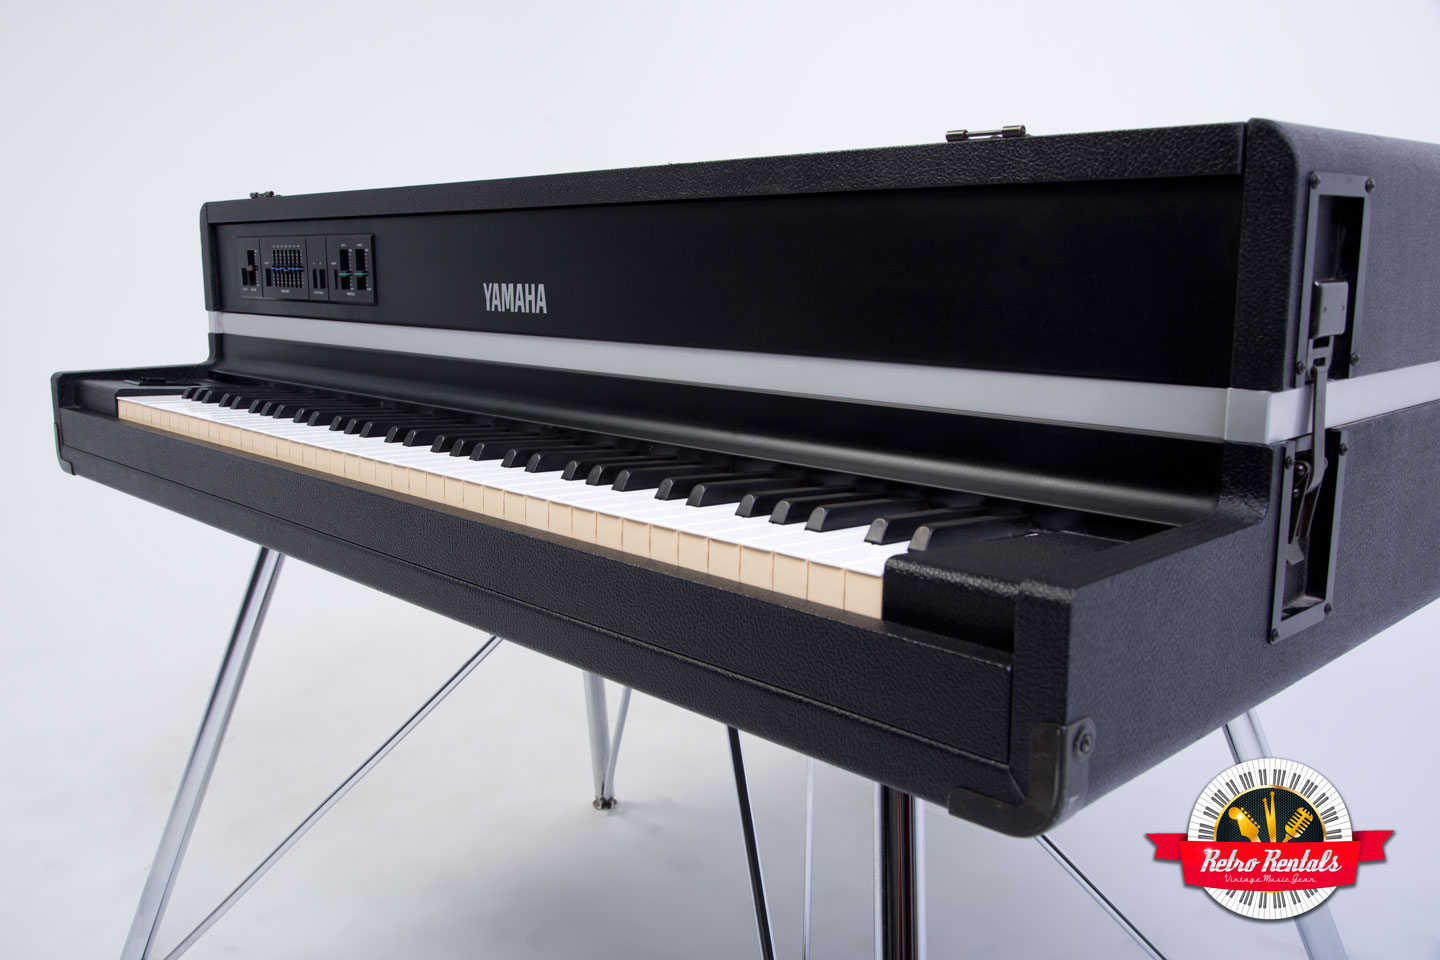 Yamaha cp 70m midi piano 73 key retro rentals for Yamaha piano keyboard models